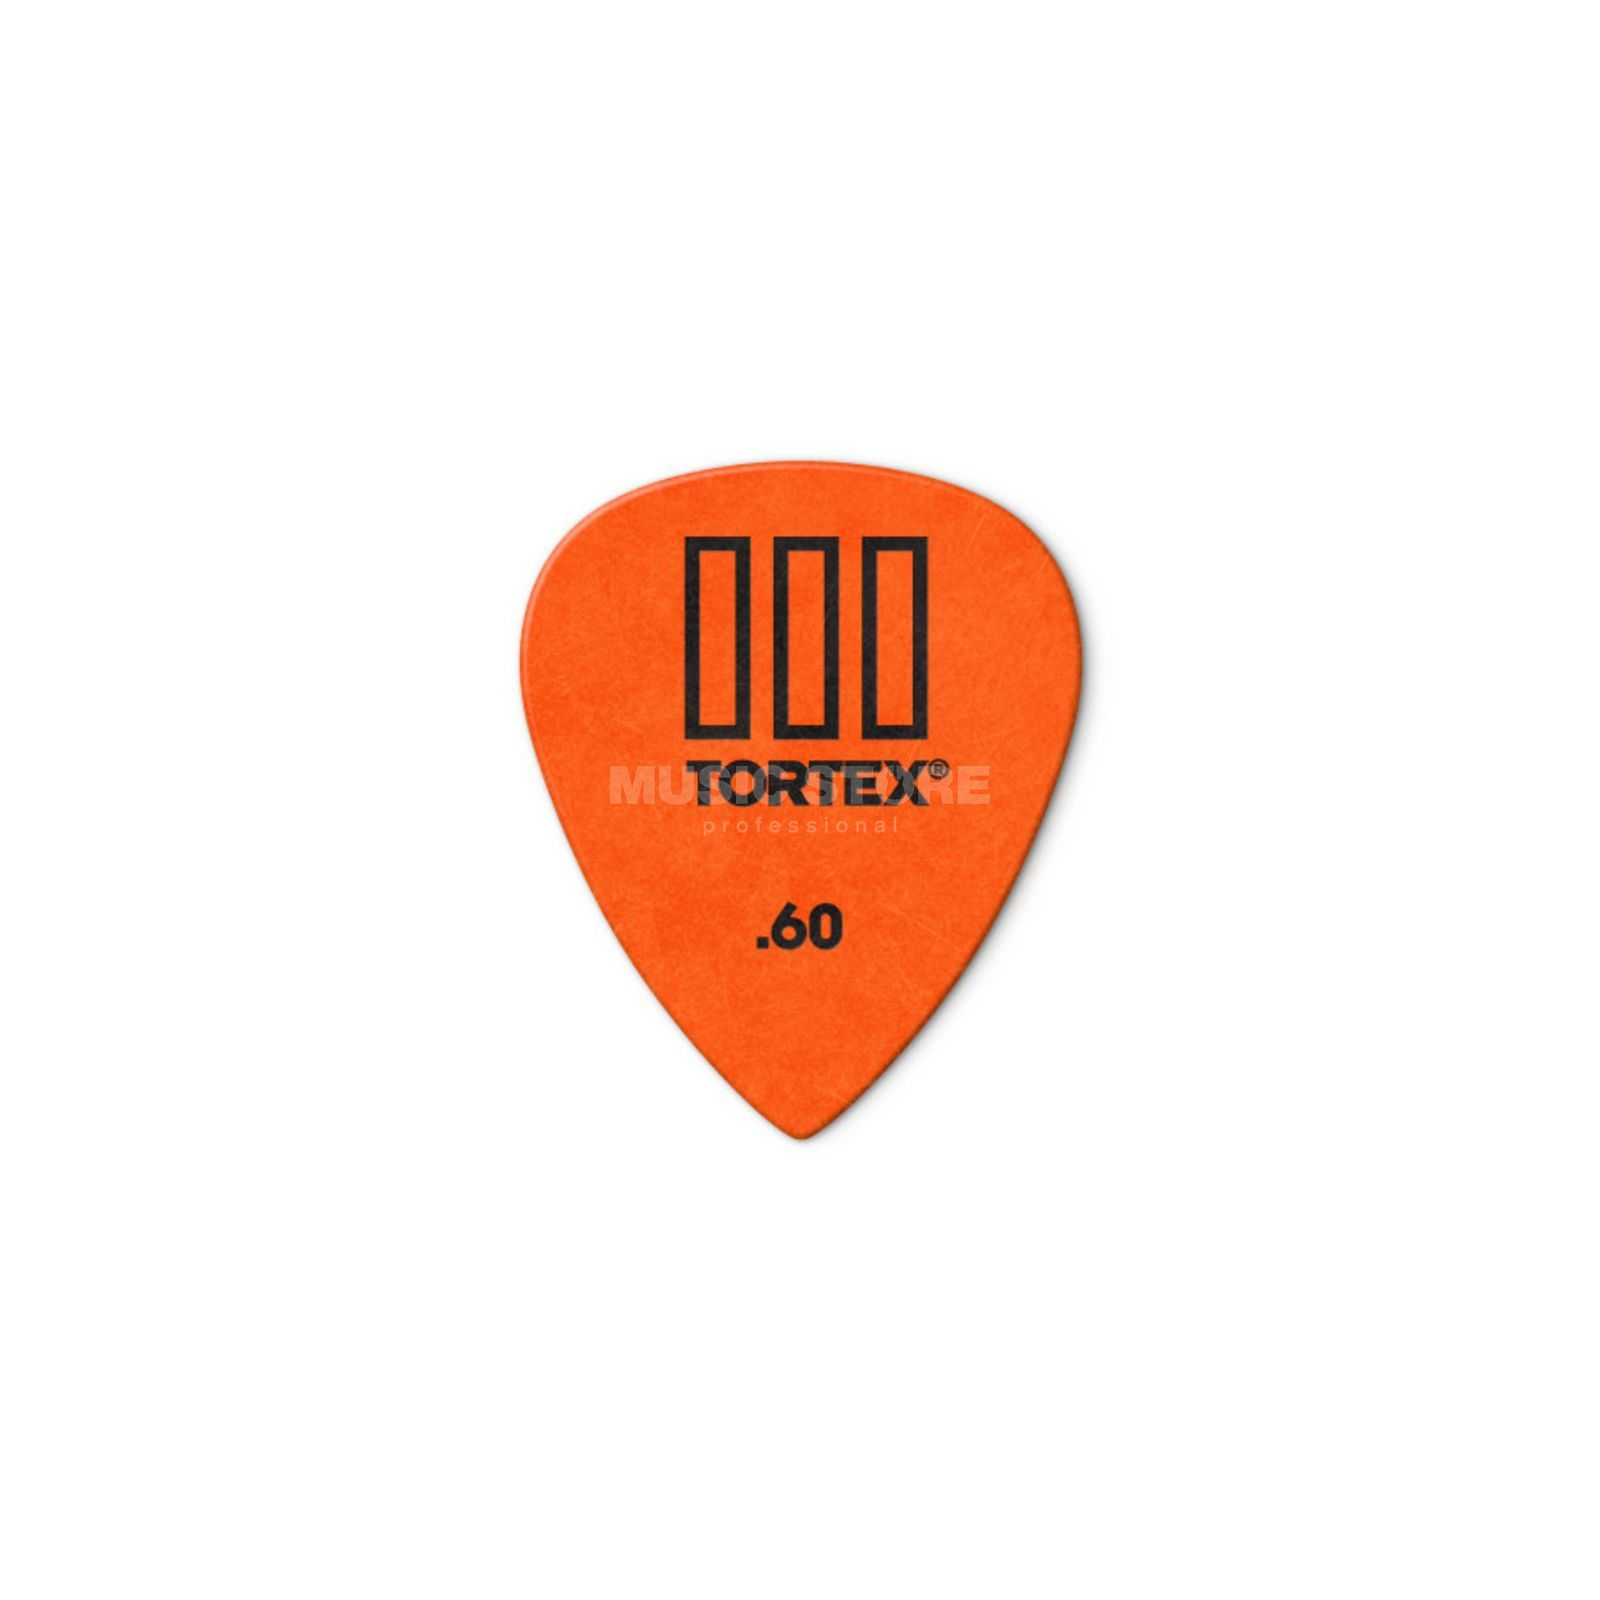 Dunlop Tortex III 462 Plektren 0,60 12er Set, orange Produktbild